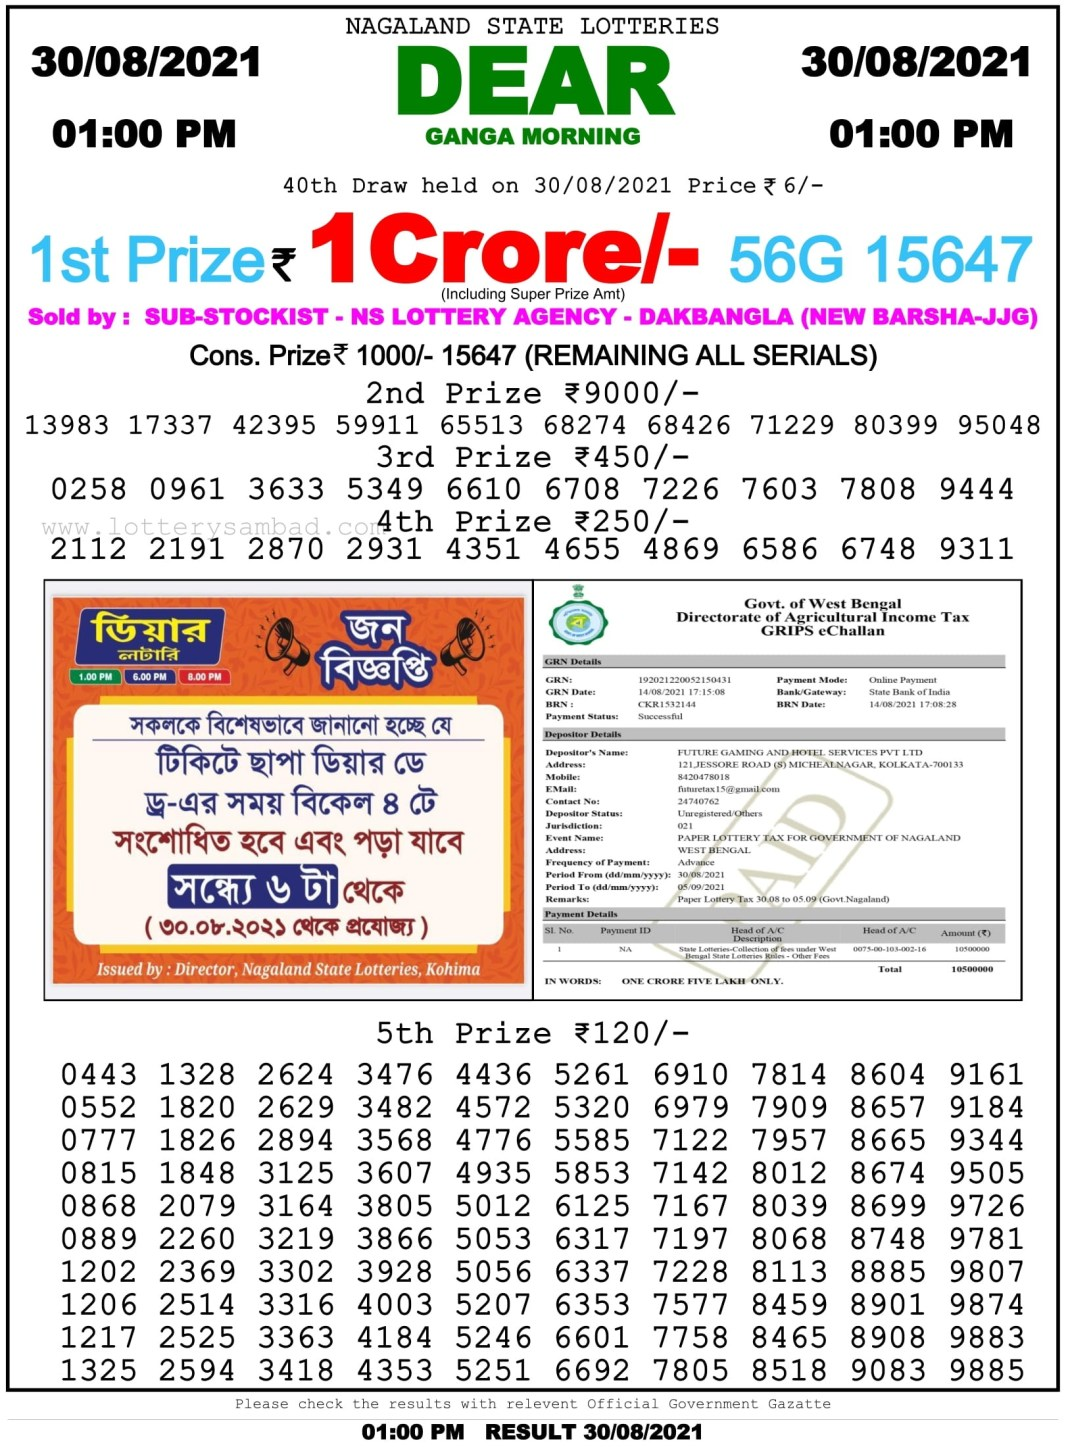 Nagaland State Lottery Result 30.8.2021 at 1 PM